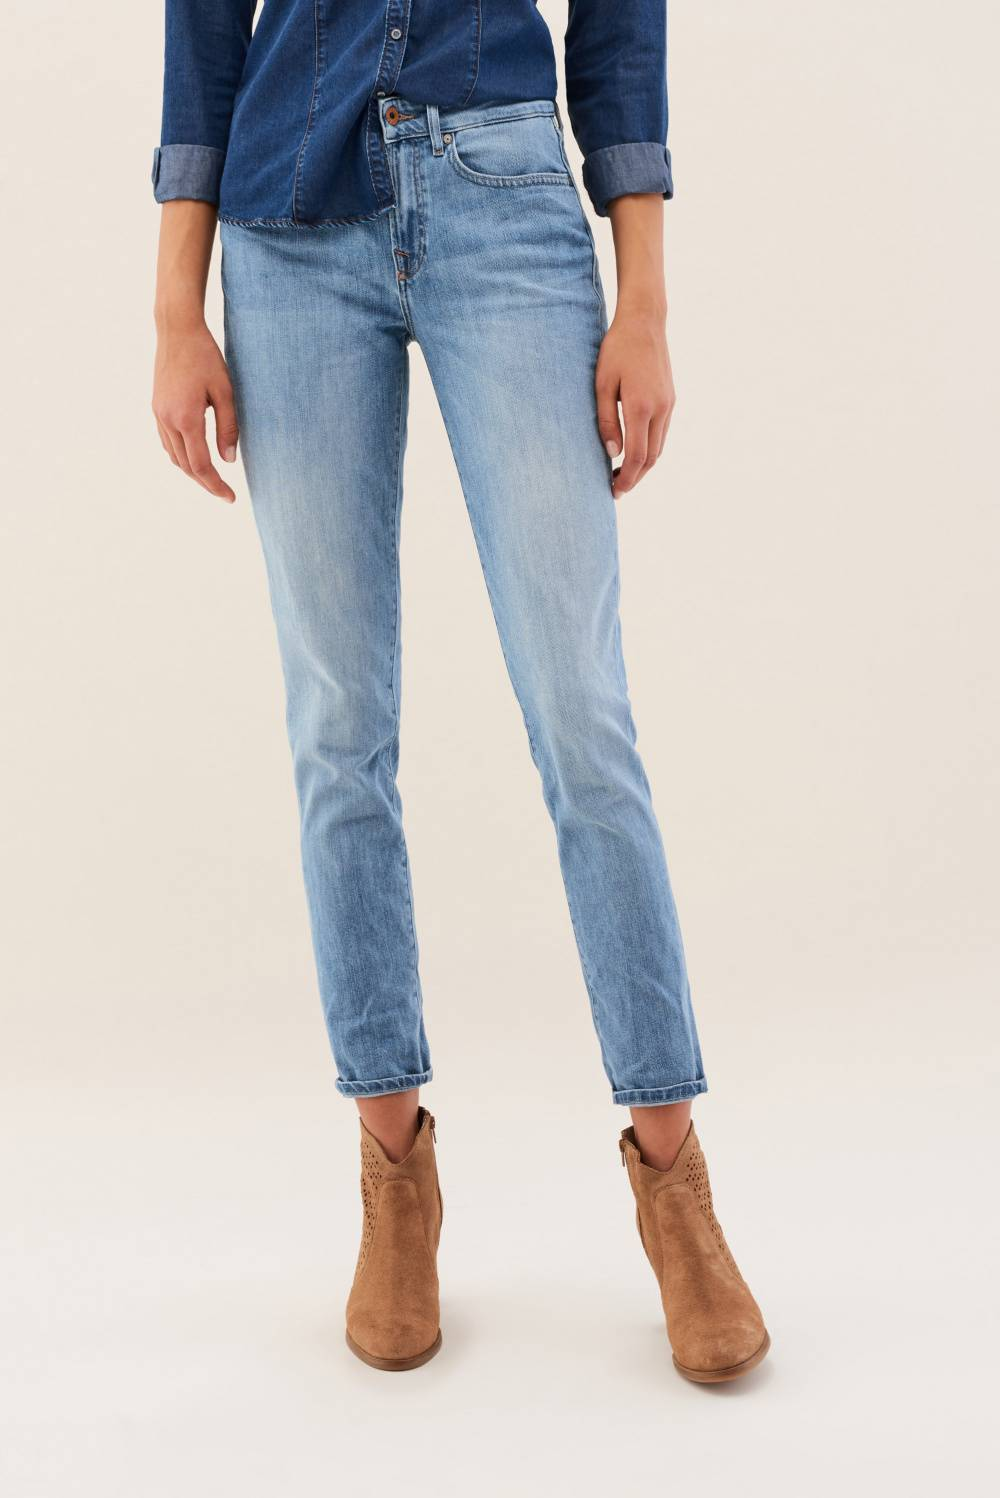 Slimming It jeans - Salsa